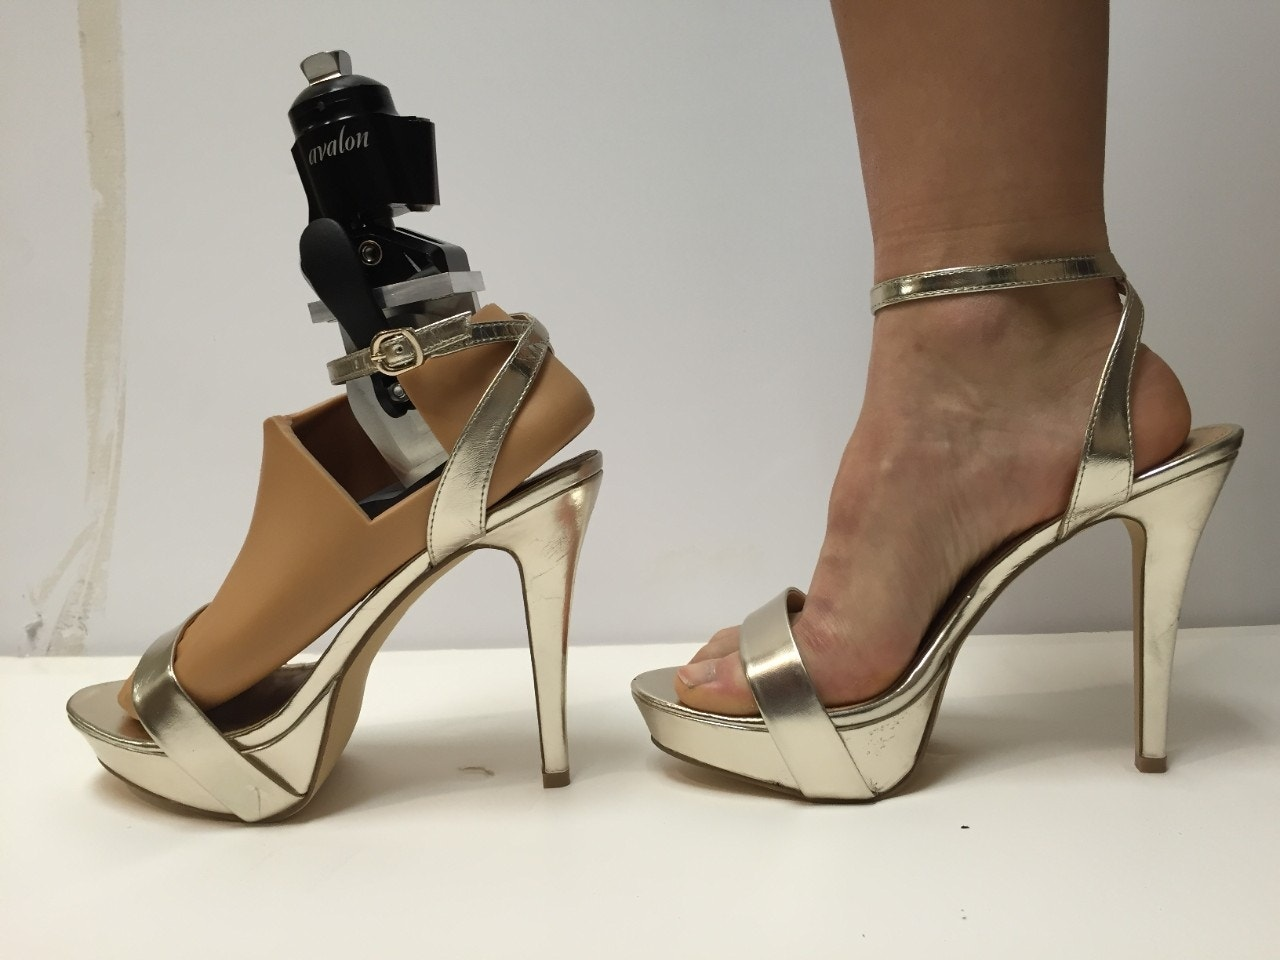 Johns Hopkins University students develop prosthetic foot ...